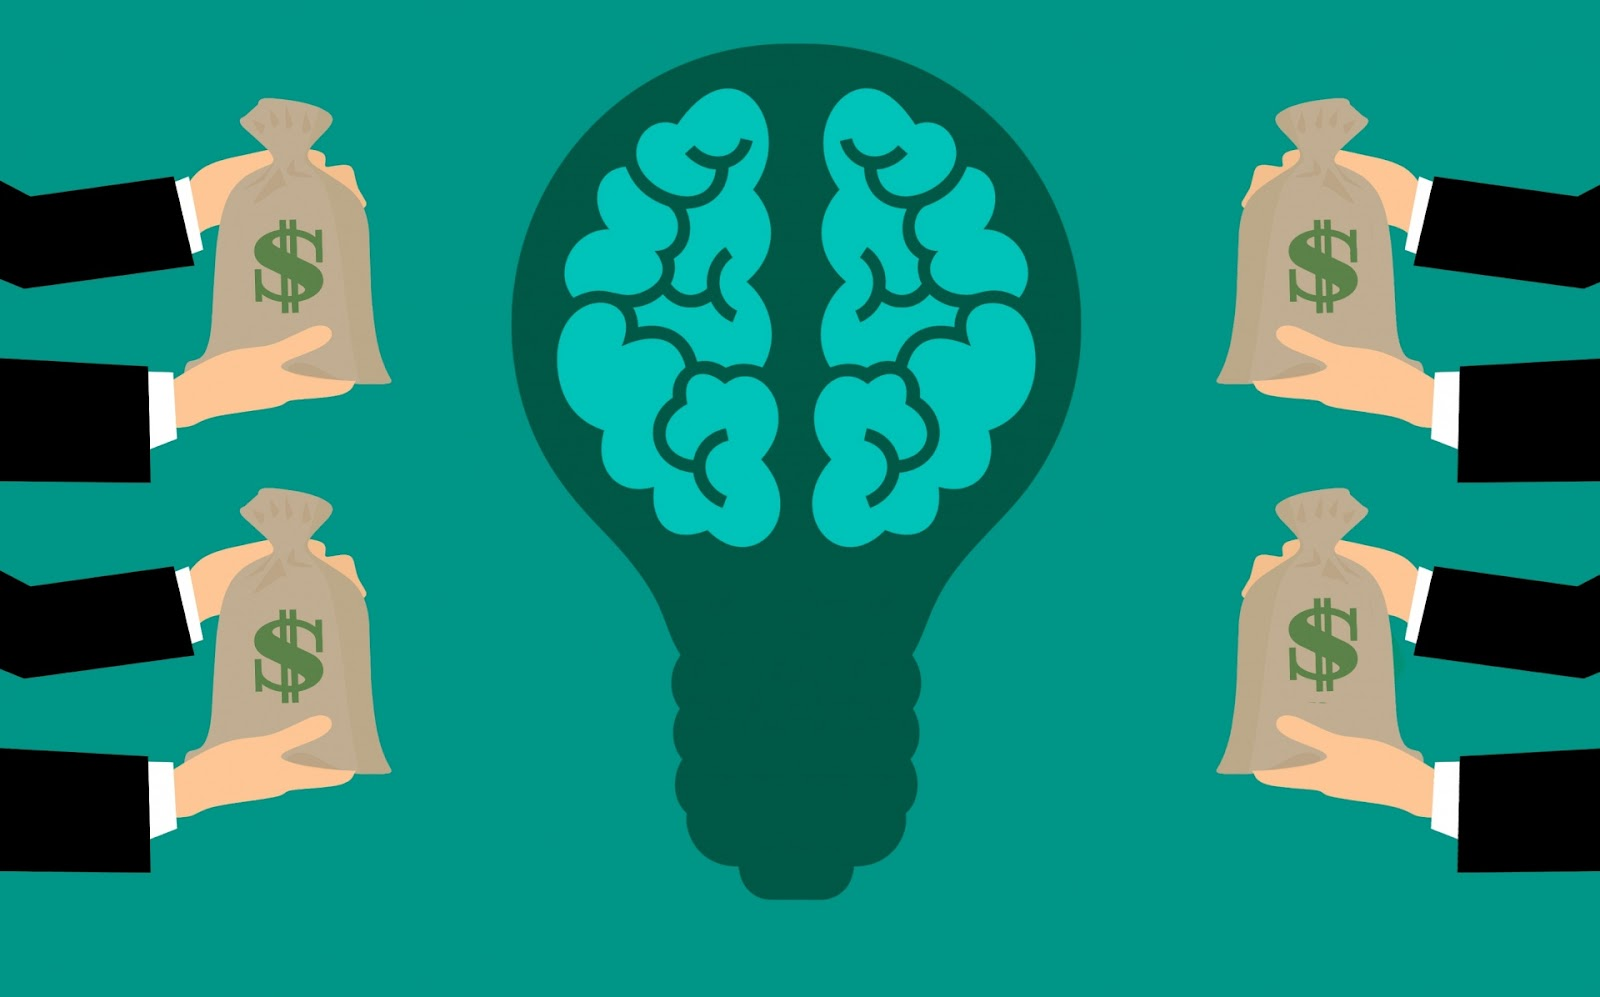 A cartoon light bulb with a brain is at the centre of the image and there are two pairs of hands on its left and right side, each holding a bag of money